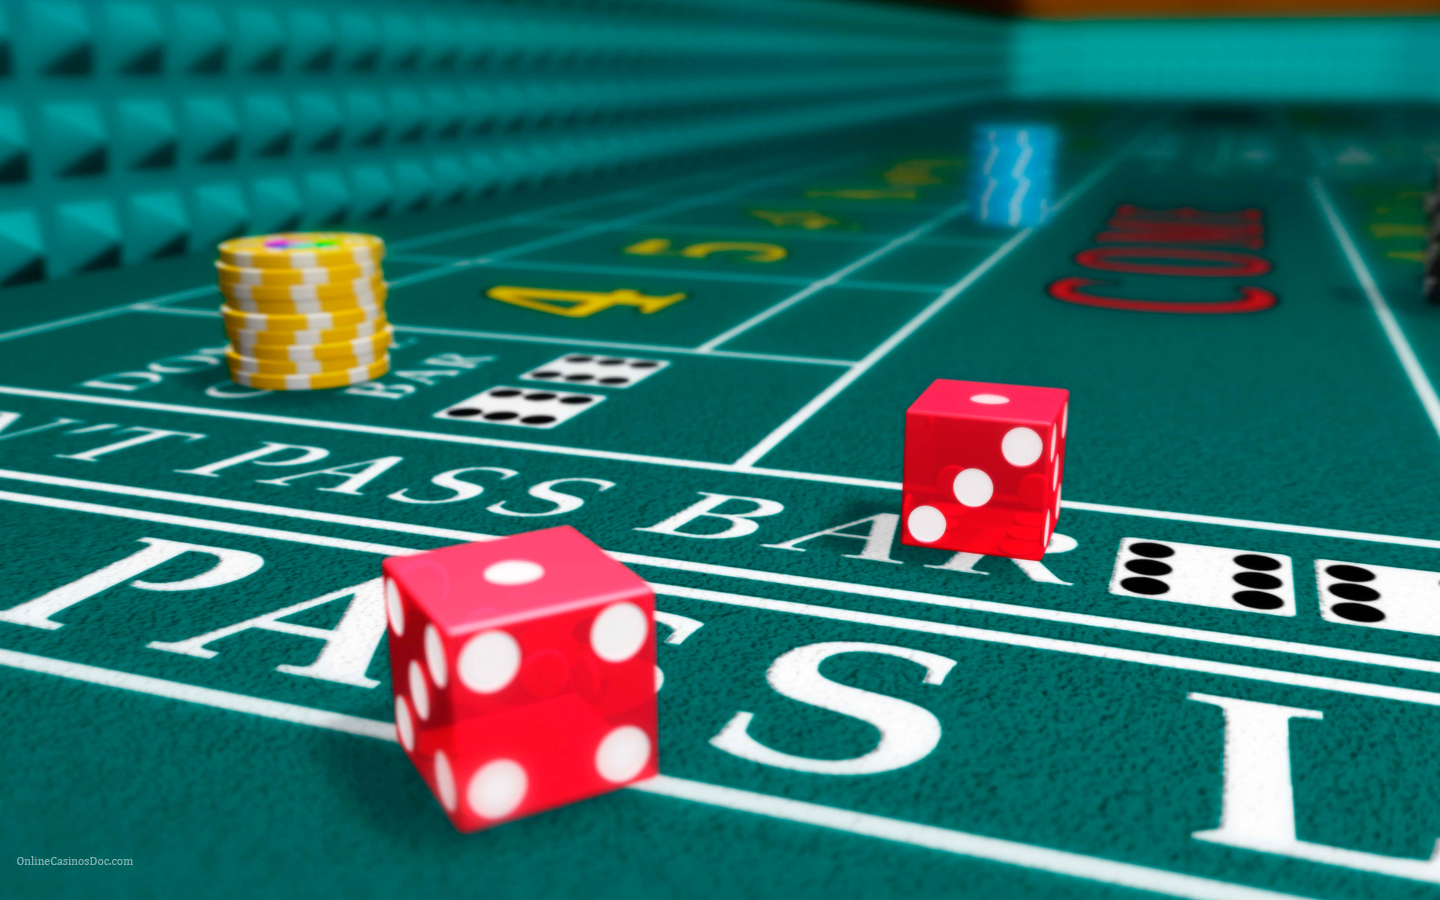 Learn How To Become Better With Gambling In 10 Minutes